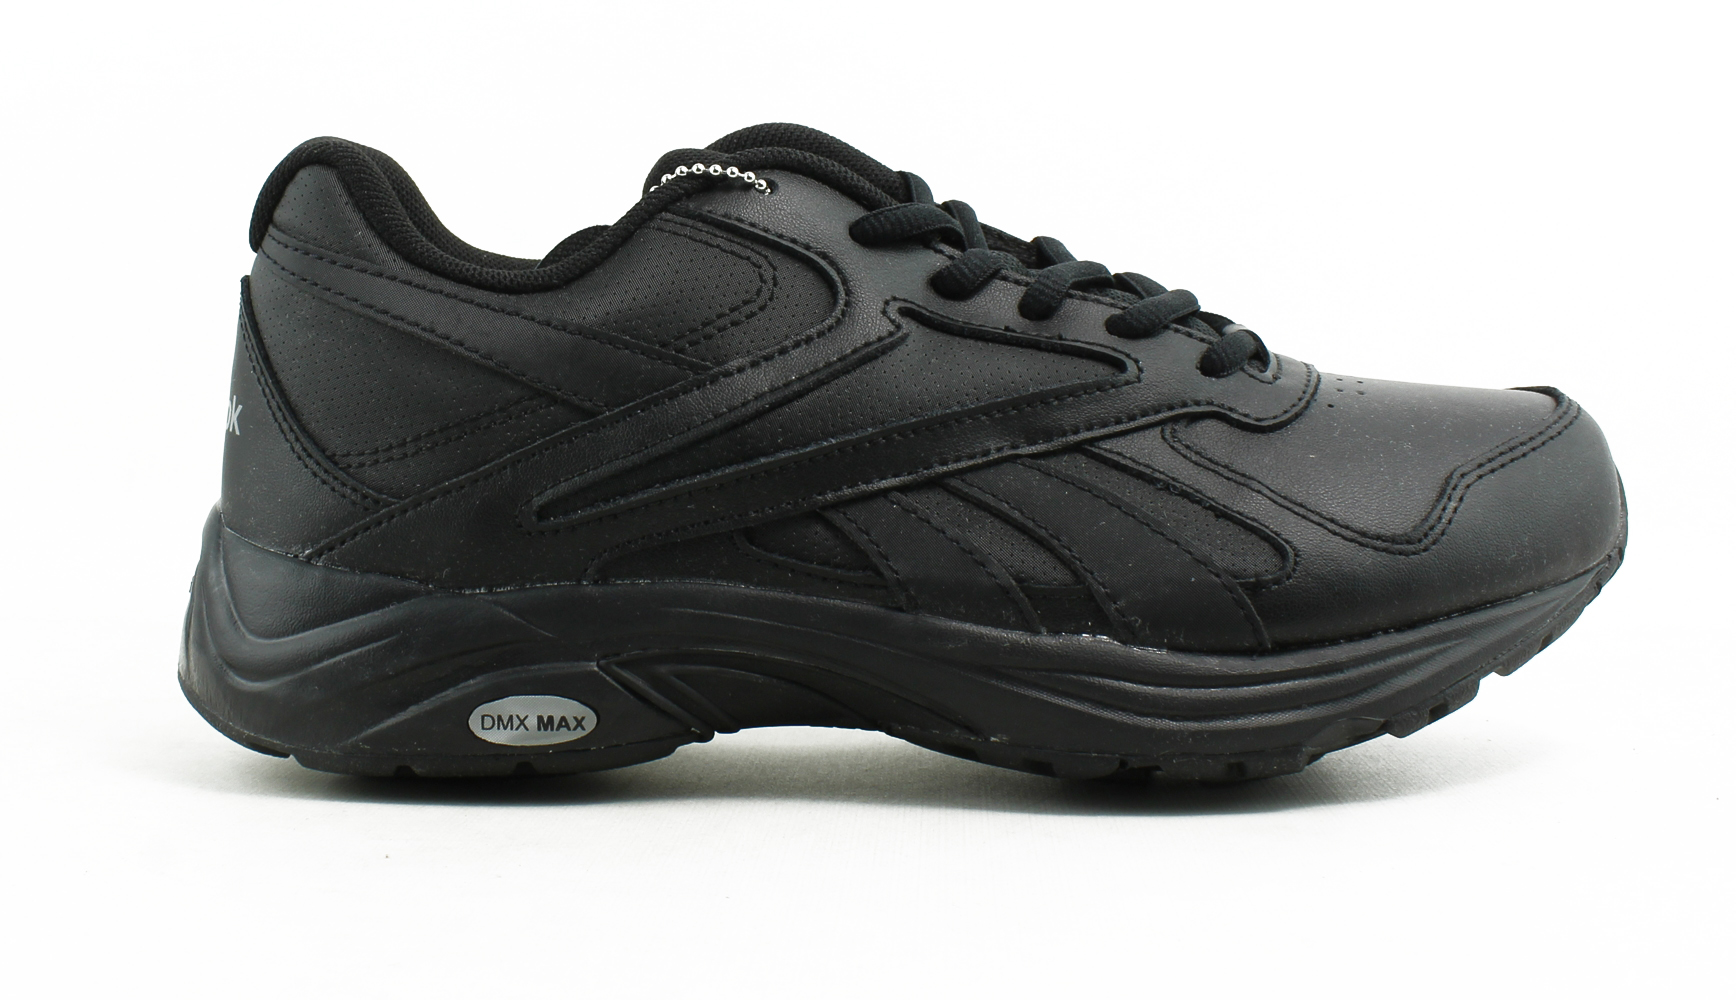 565696a97e30 Reebok Mens Walk Ultra V Dmx Max Black Walking Shoes Size 6.5 (425136)